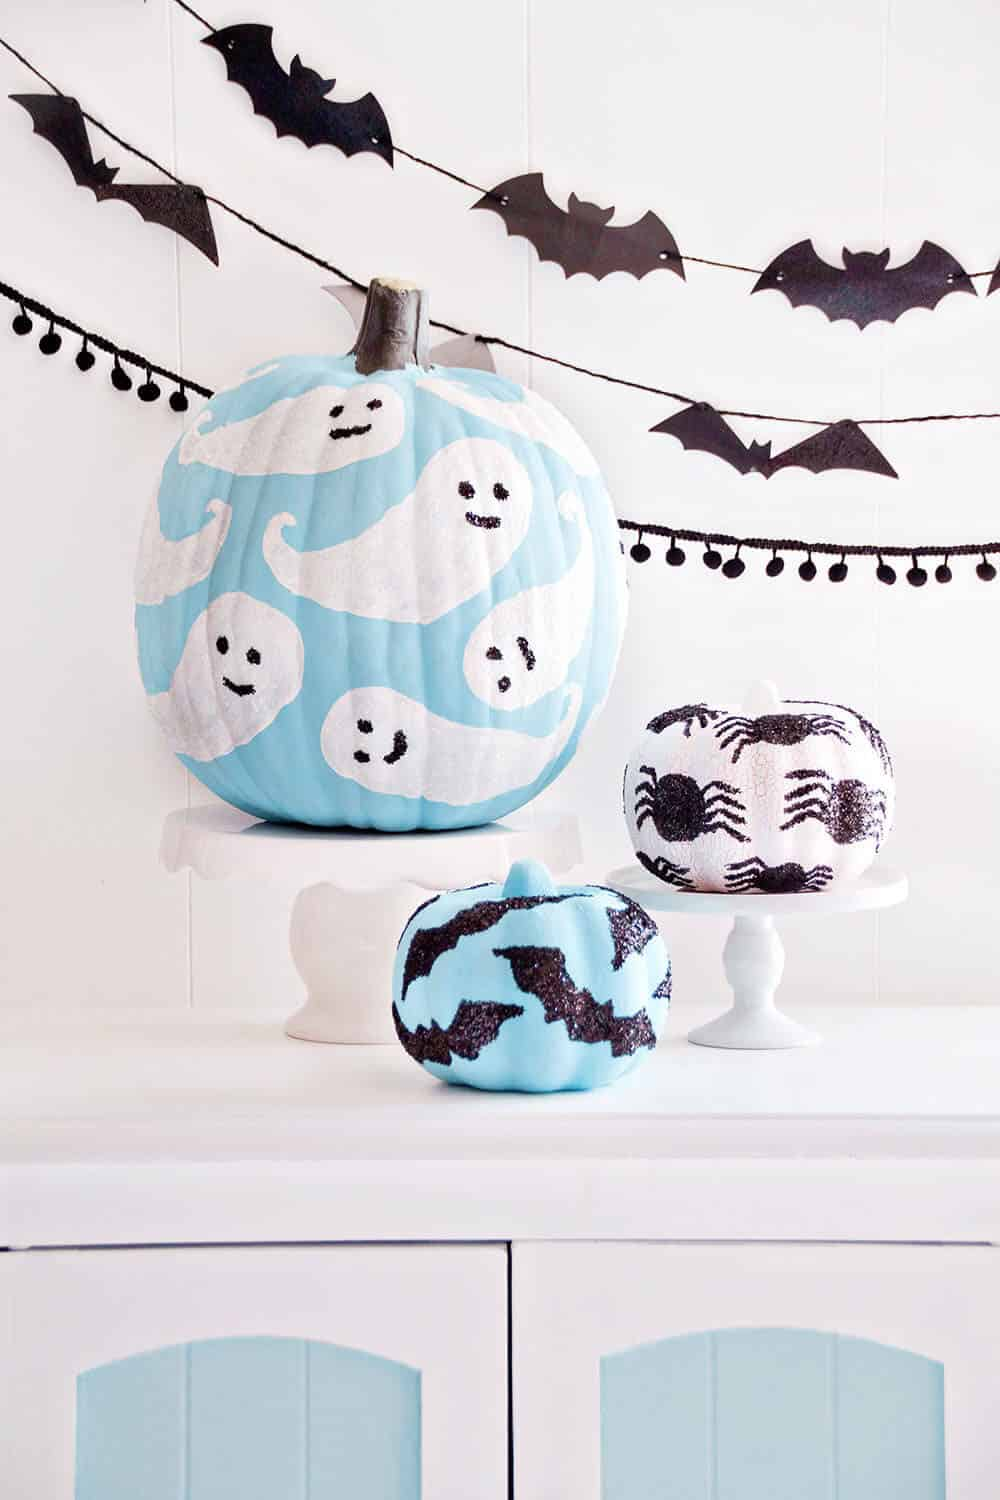 painted-pumpkins-with-glitter-spooky-ghosts-bats